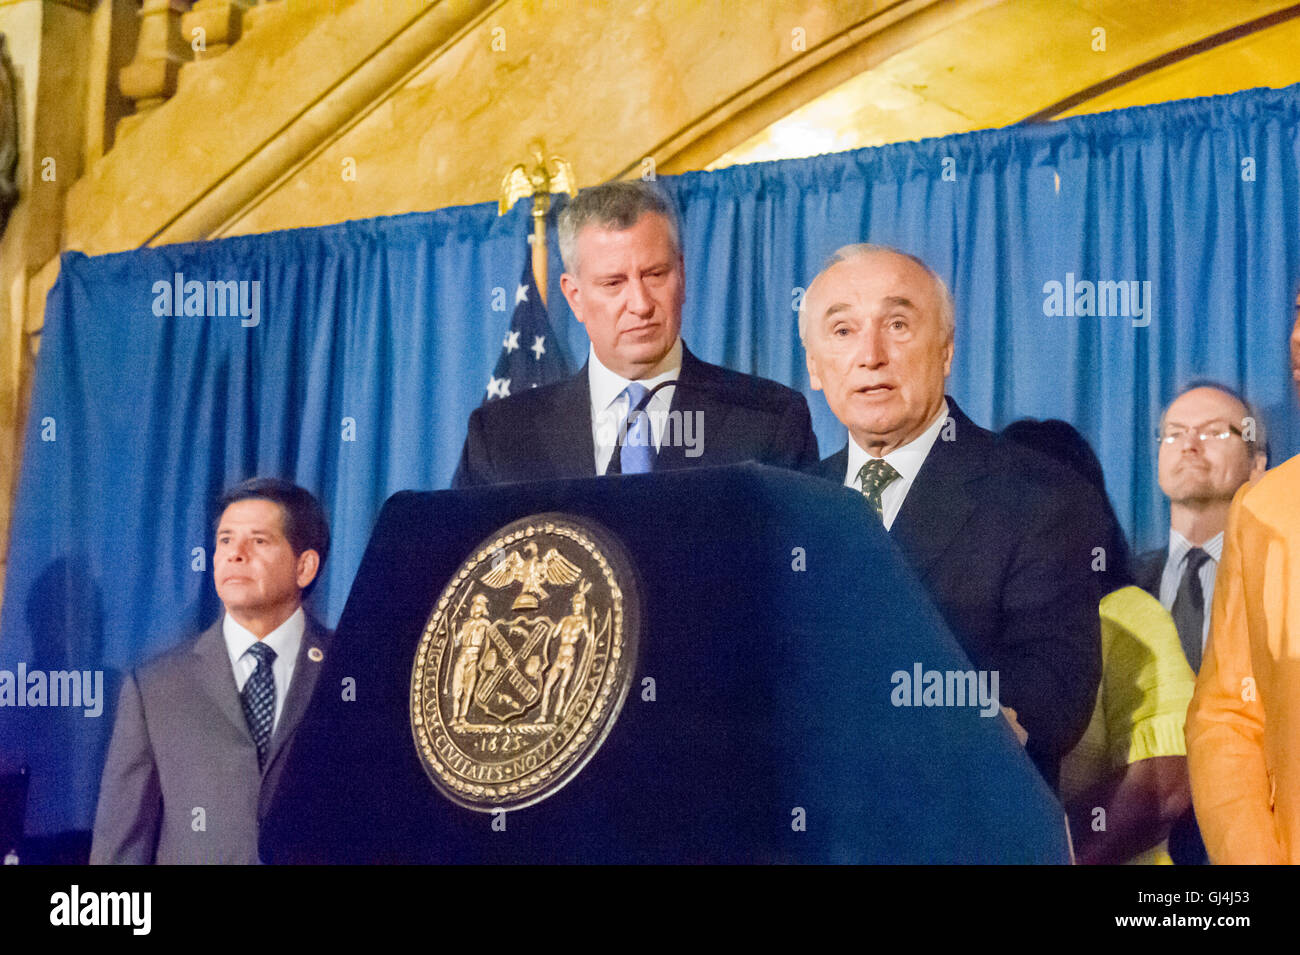 New York Mayor Bill de Blasio, left, and NYPD Commissioner William Bratton at a bill signing related to NYPD reporting - Stock Image